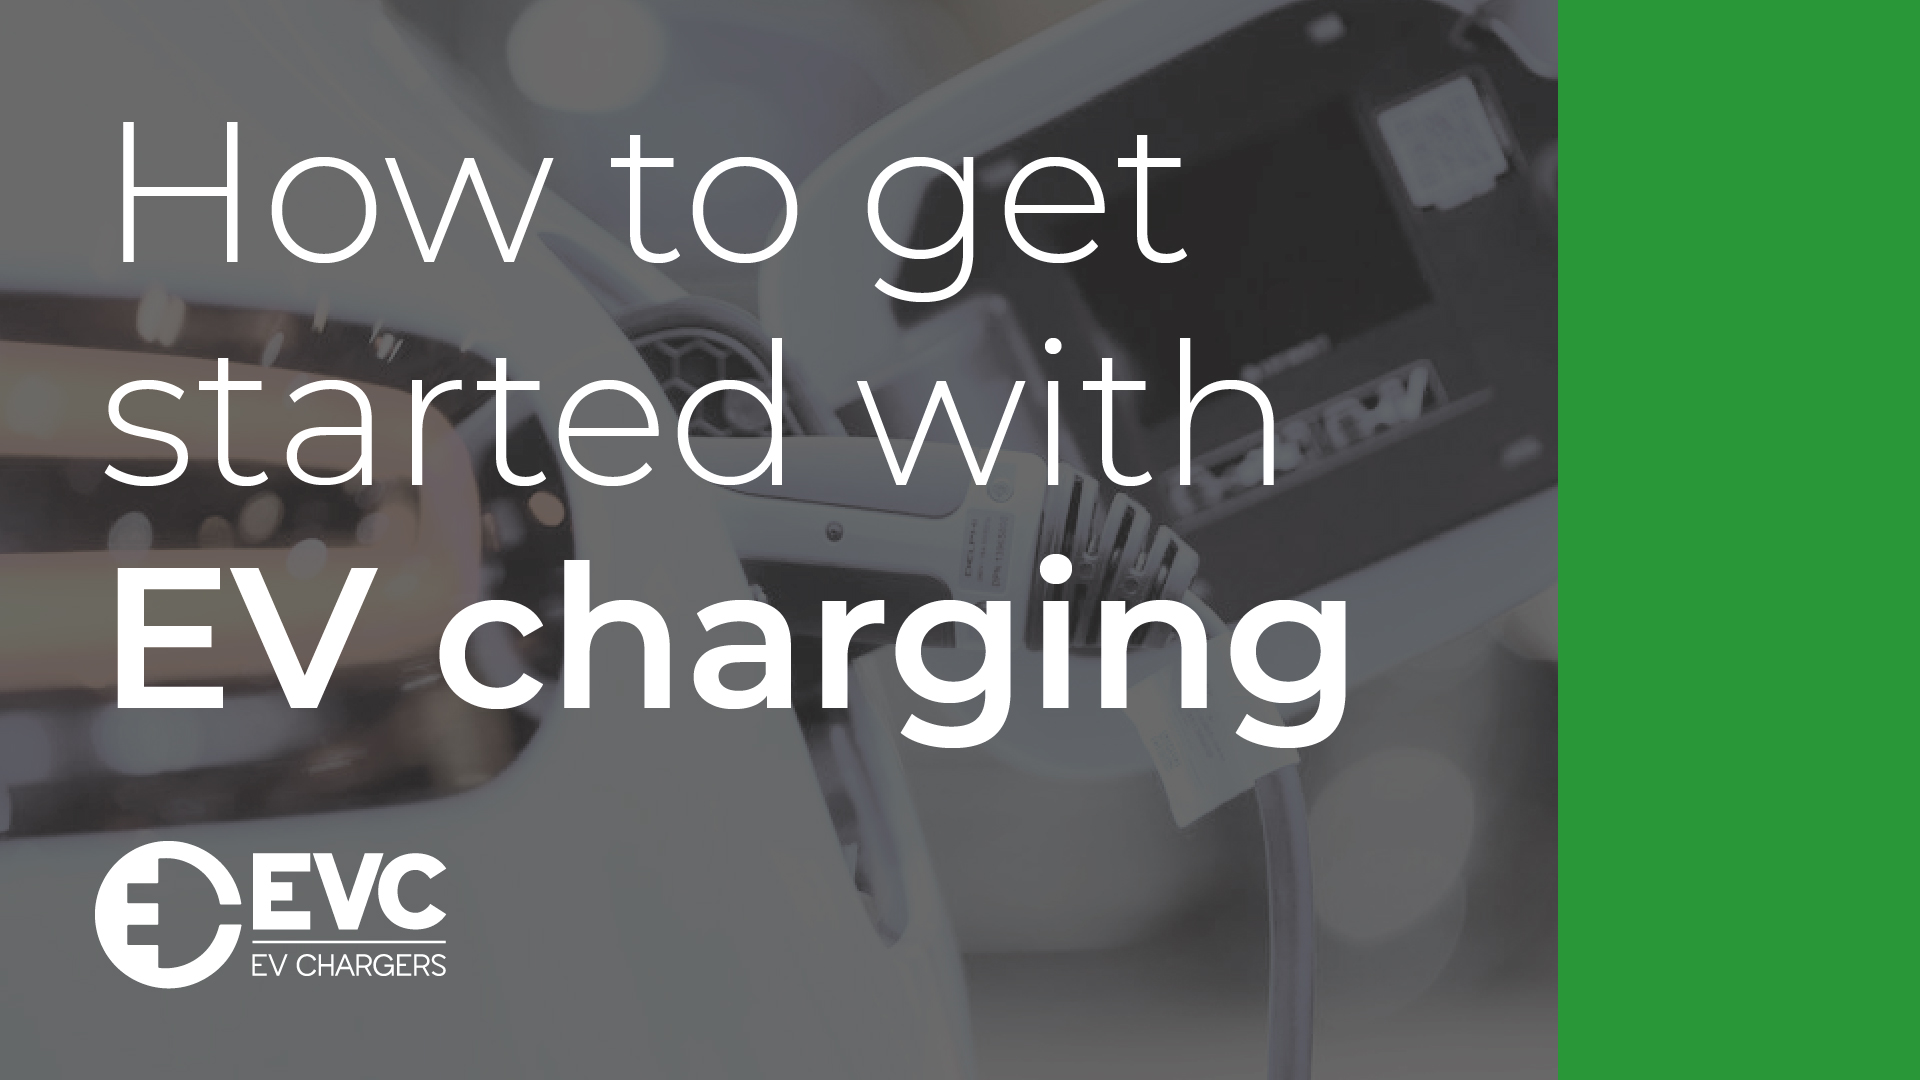 How to get started with EV charging